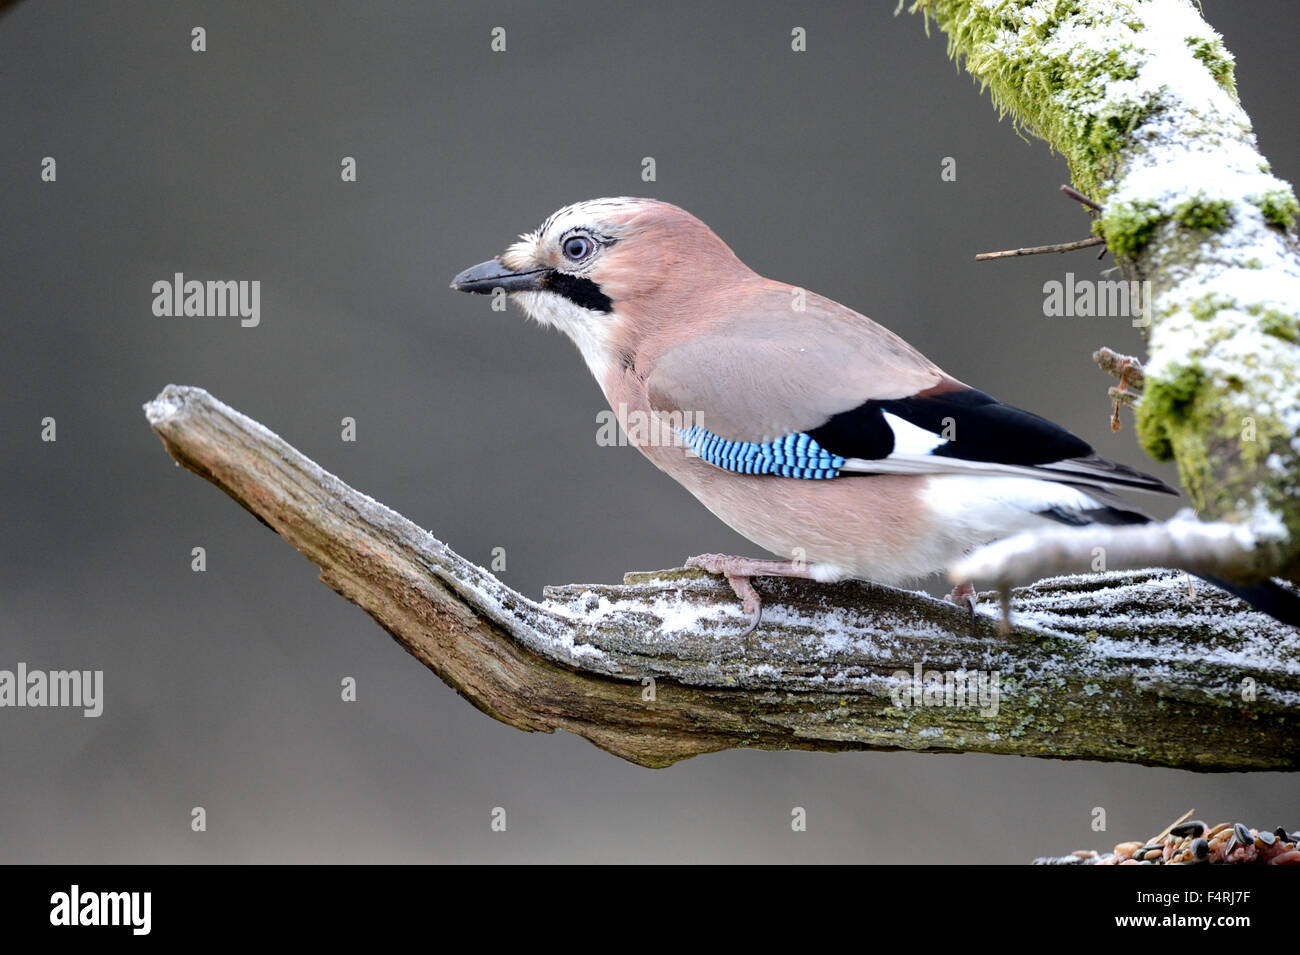 Germany, jay, Garrulus glandarius, songbirds, passerine, bird, birds, forest birds, Germany - Stock Image